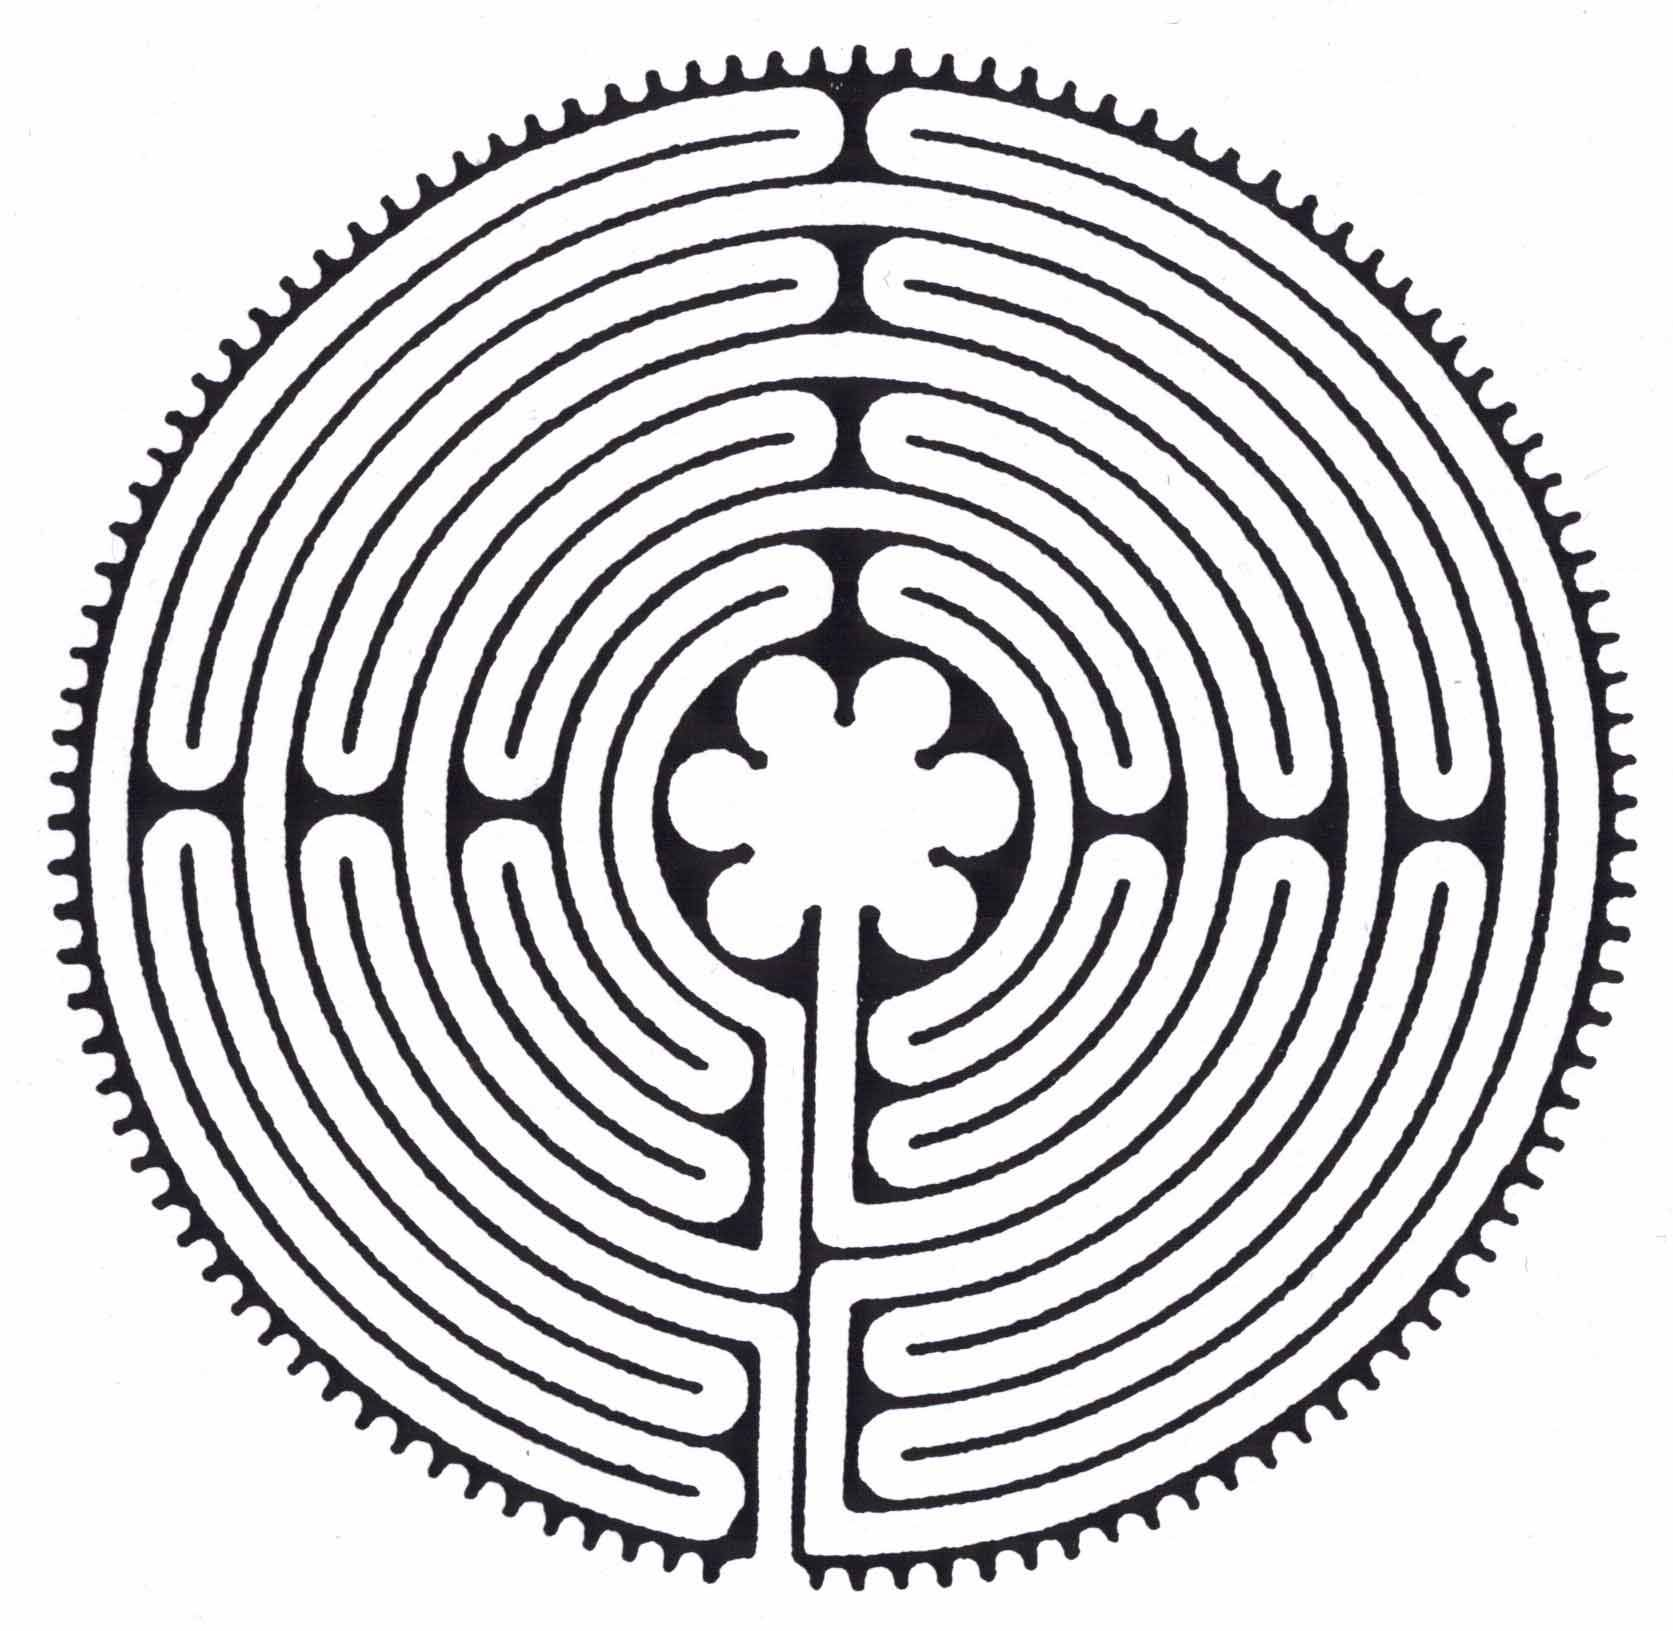 Sabbats paths symbols and patterns creative guide through the 12 steps step labyrinth walks buycottarizona Image collections